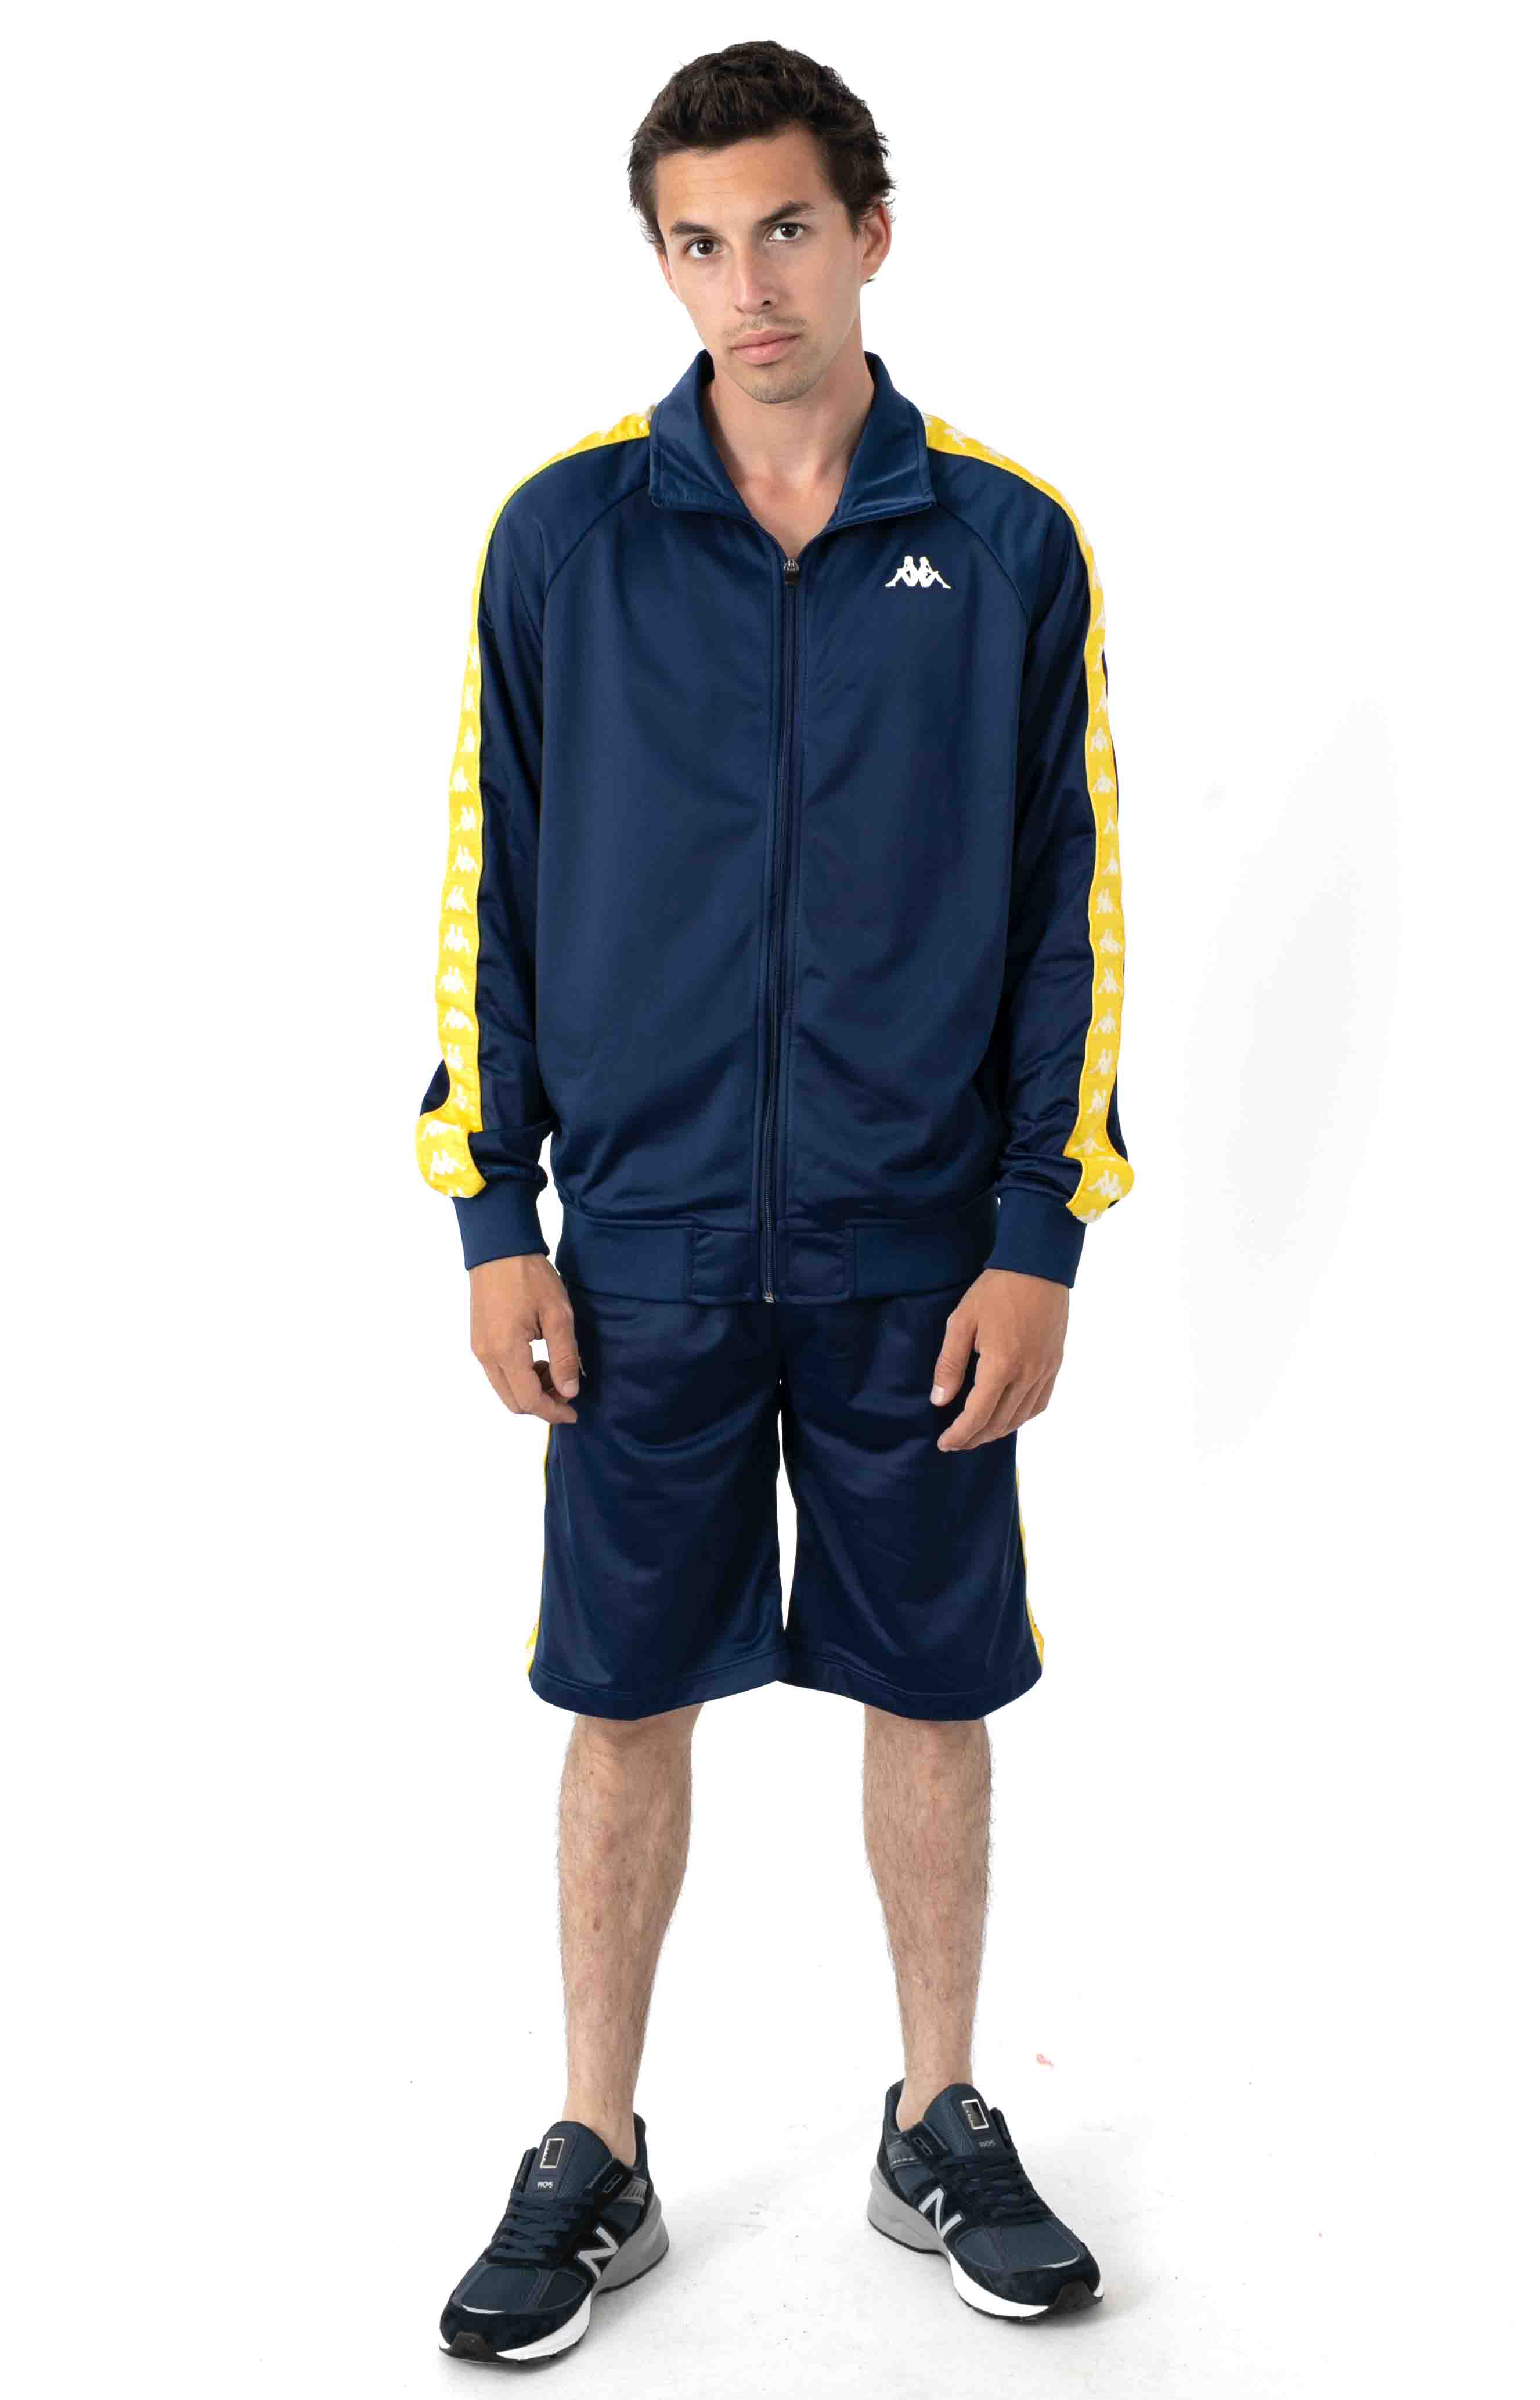 222 Banda Anniston Jacket - Blue Mid/Yellow Yolk 4